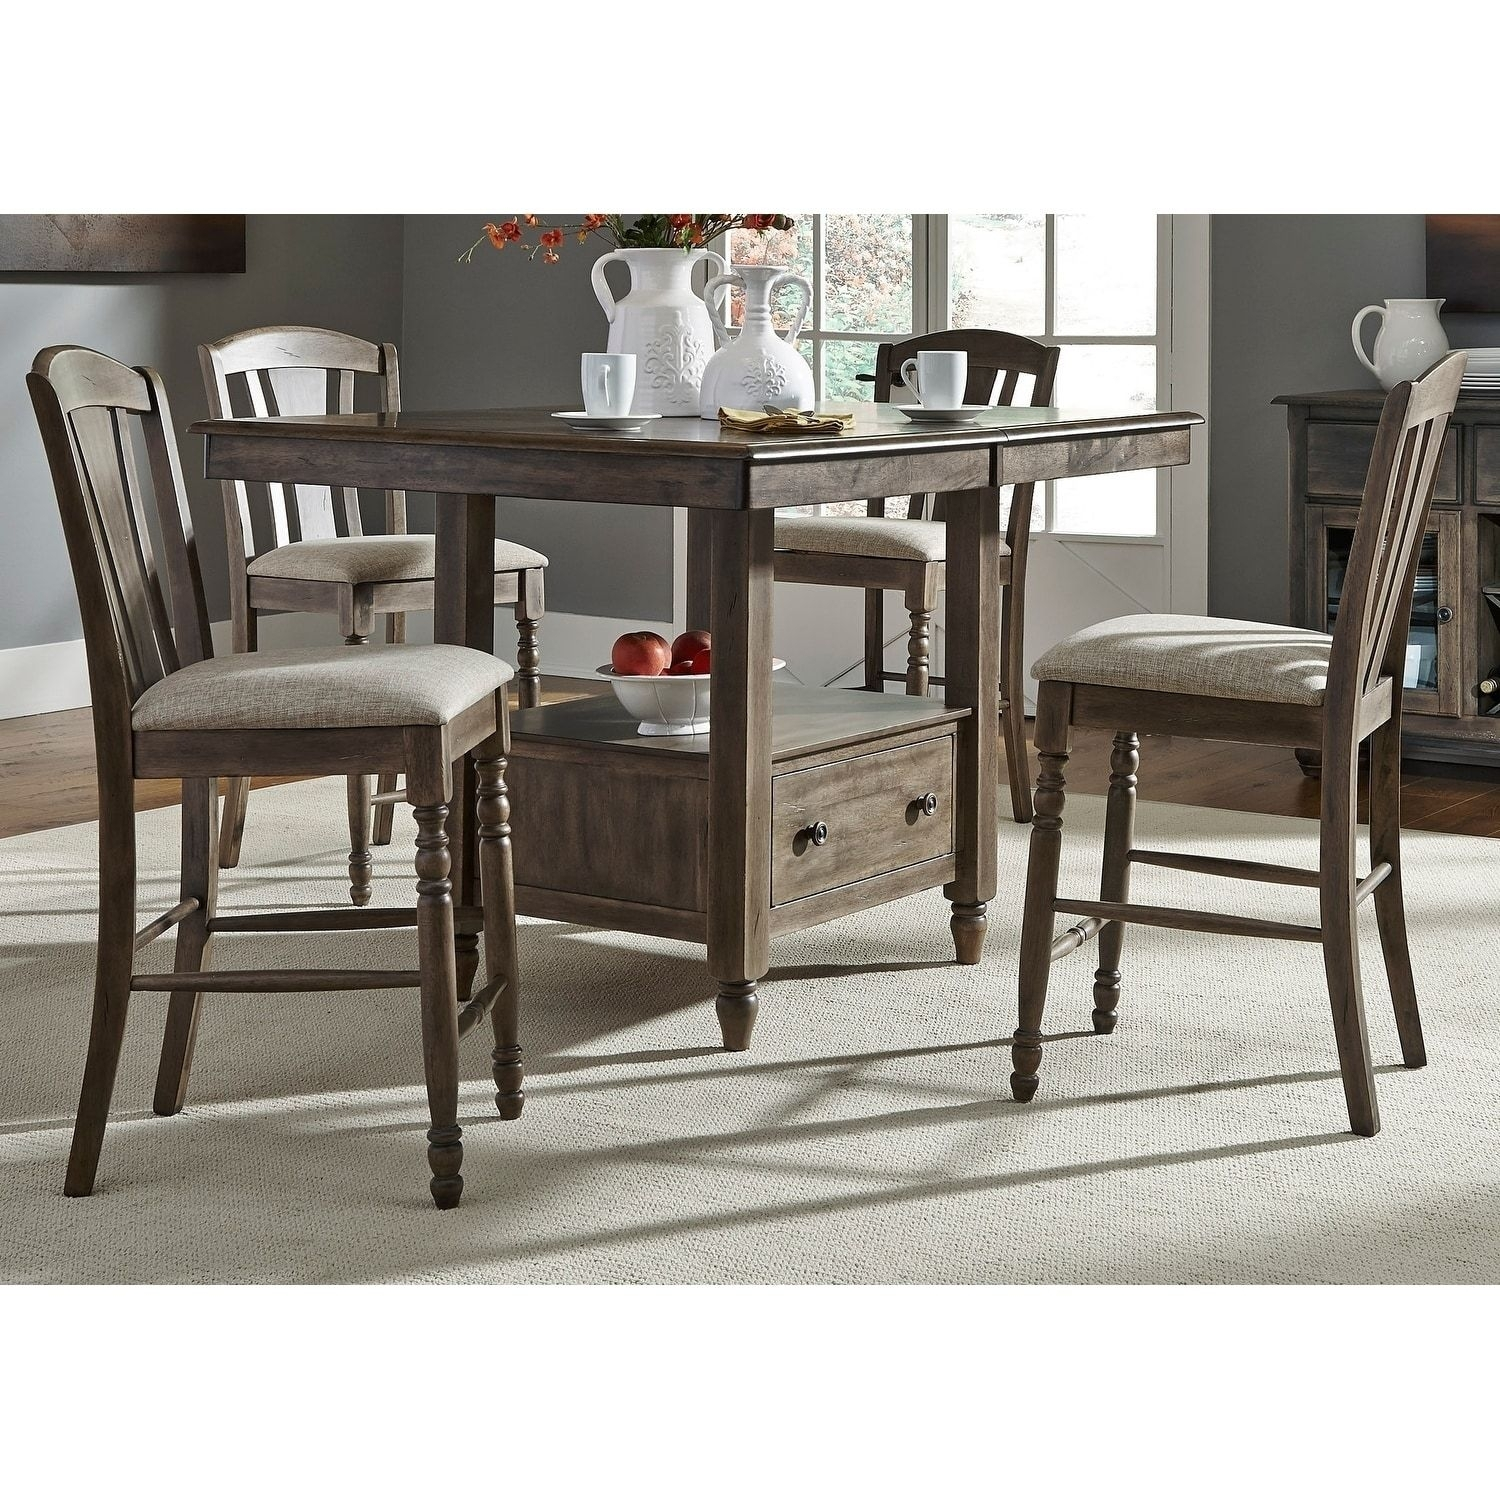 Liberty Candlewood Weather Grey 7 Piece Slat Back Gathering Dinette Within Current Combs 5 Piece 48 Inch Extension Dining Sets With Mindy Side Chairs (Image 11 of 20)